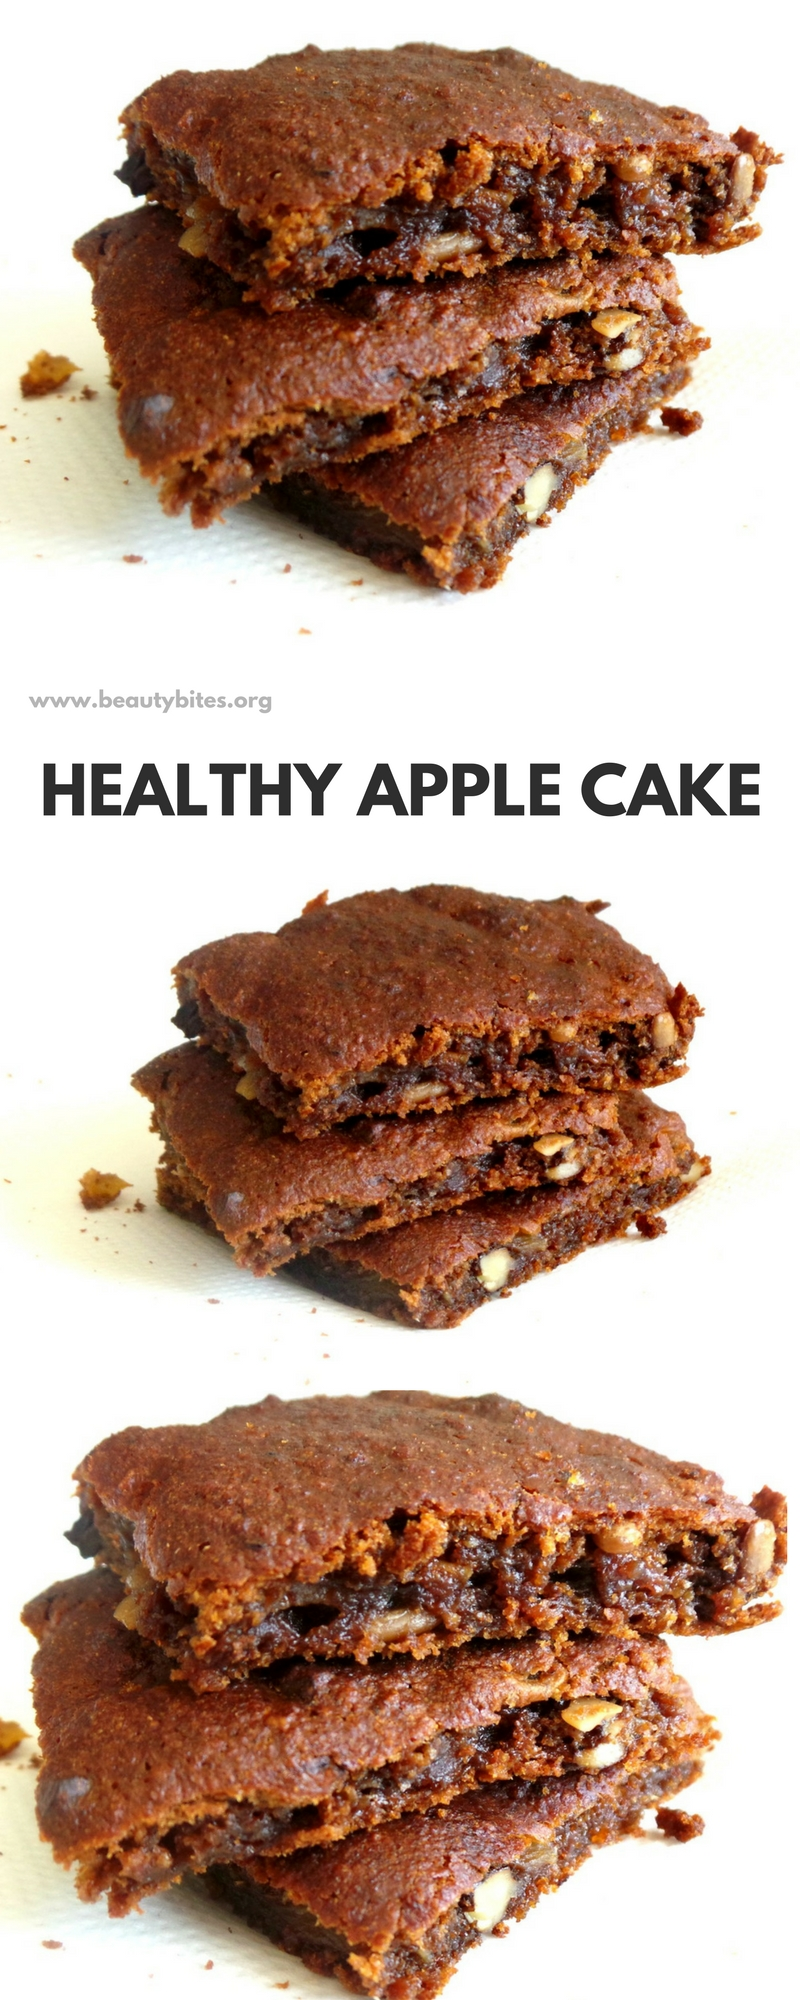 Stop wondering what to do with apples and just make this healthy apple cake with walnuts and oats that is flourless, refined sugar-free and delicious! An easy and super tasty healthy apple dessert that is perfect for healthy meal prep and is good as snack, dessert or even breakfast (if there's any left)!